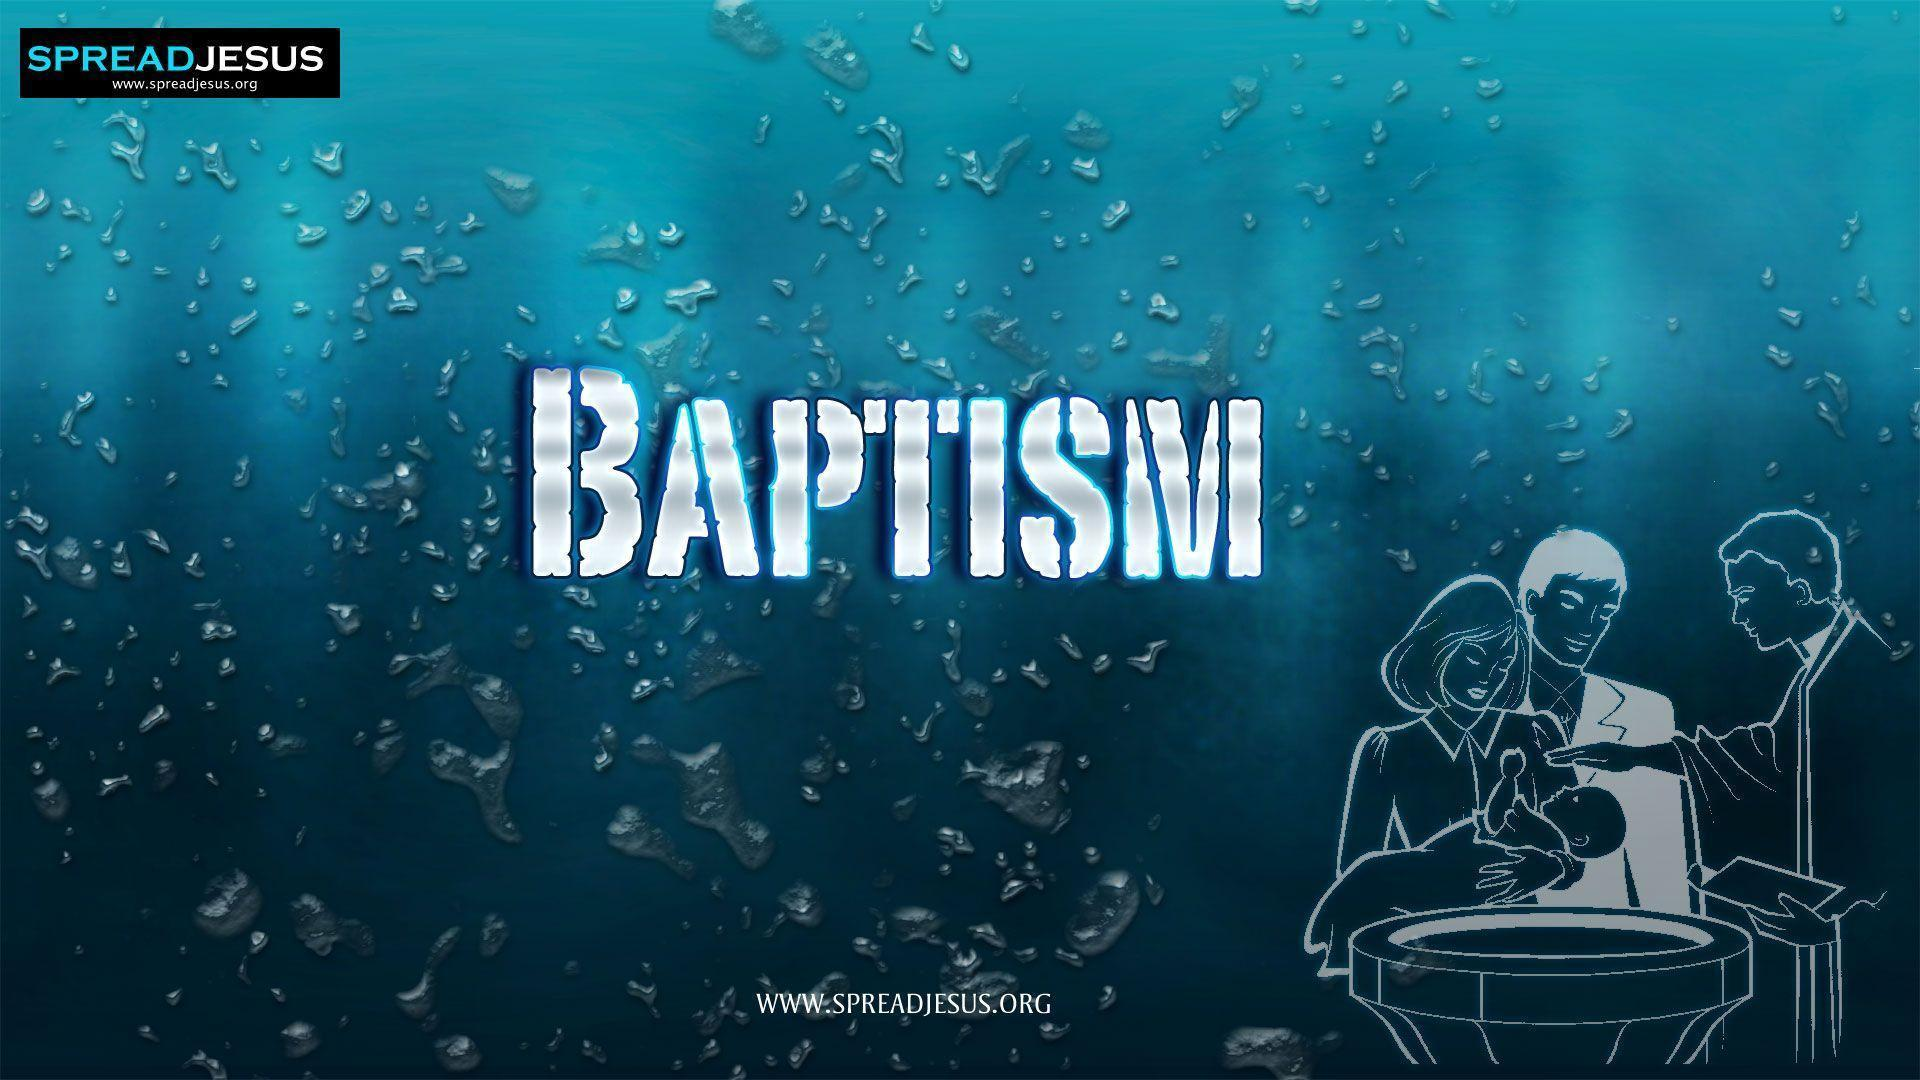 Baptism Wallpapers - Wallpaper Cave